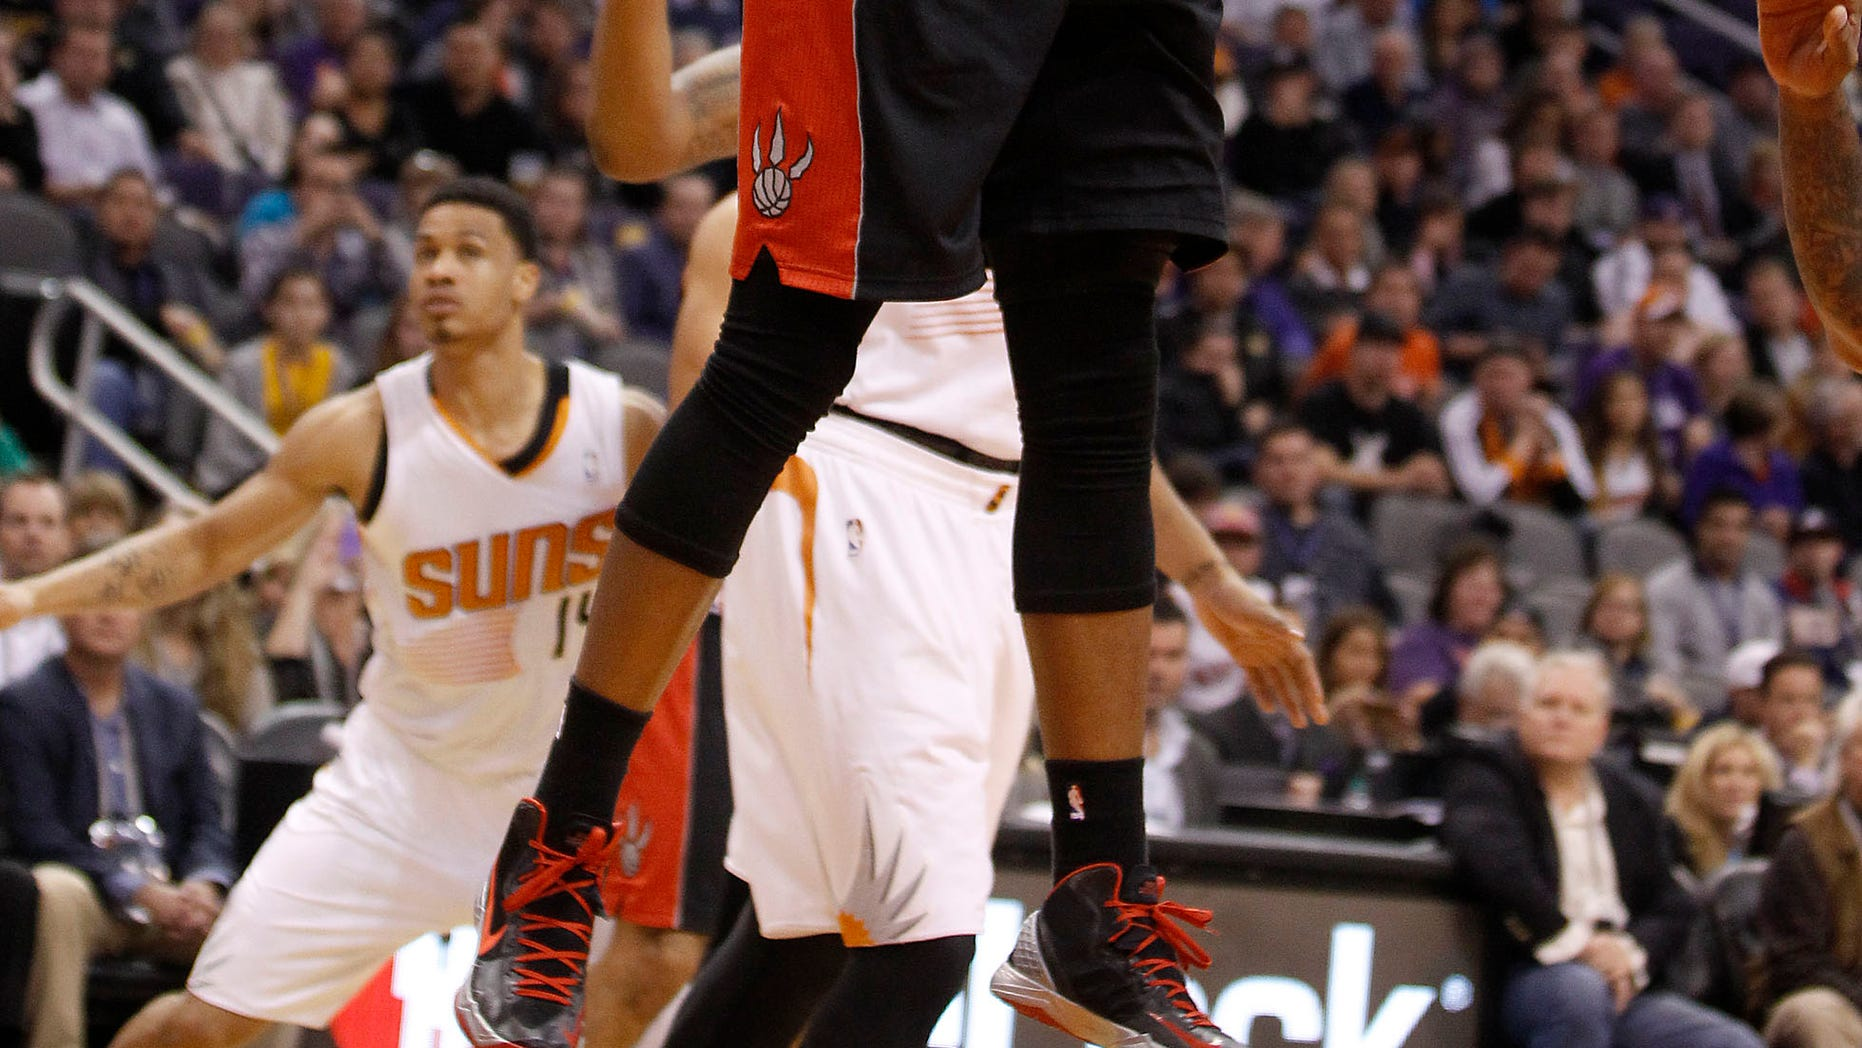 Toronto Raptors' Rudy Gay (22) drives to the basket against the Phoenix Suns during the second half of an NBA basketball game Friday, Dec. 6, 2013 in Phoenix. (AP Photo/Ralph Freso)